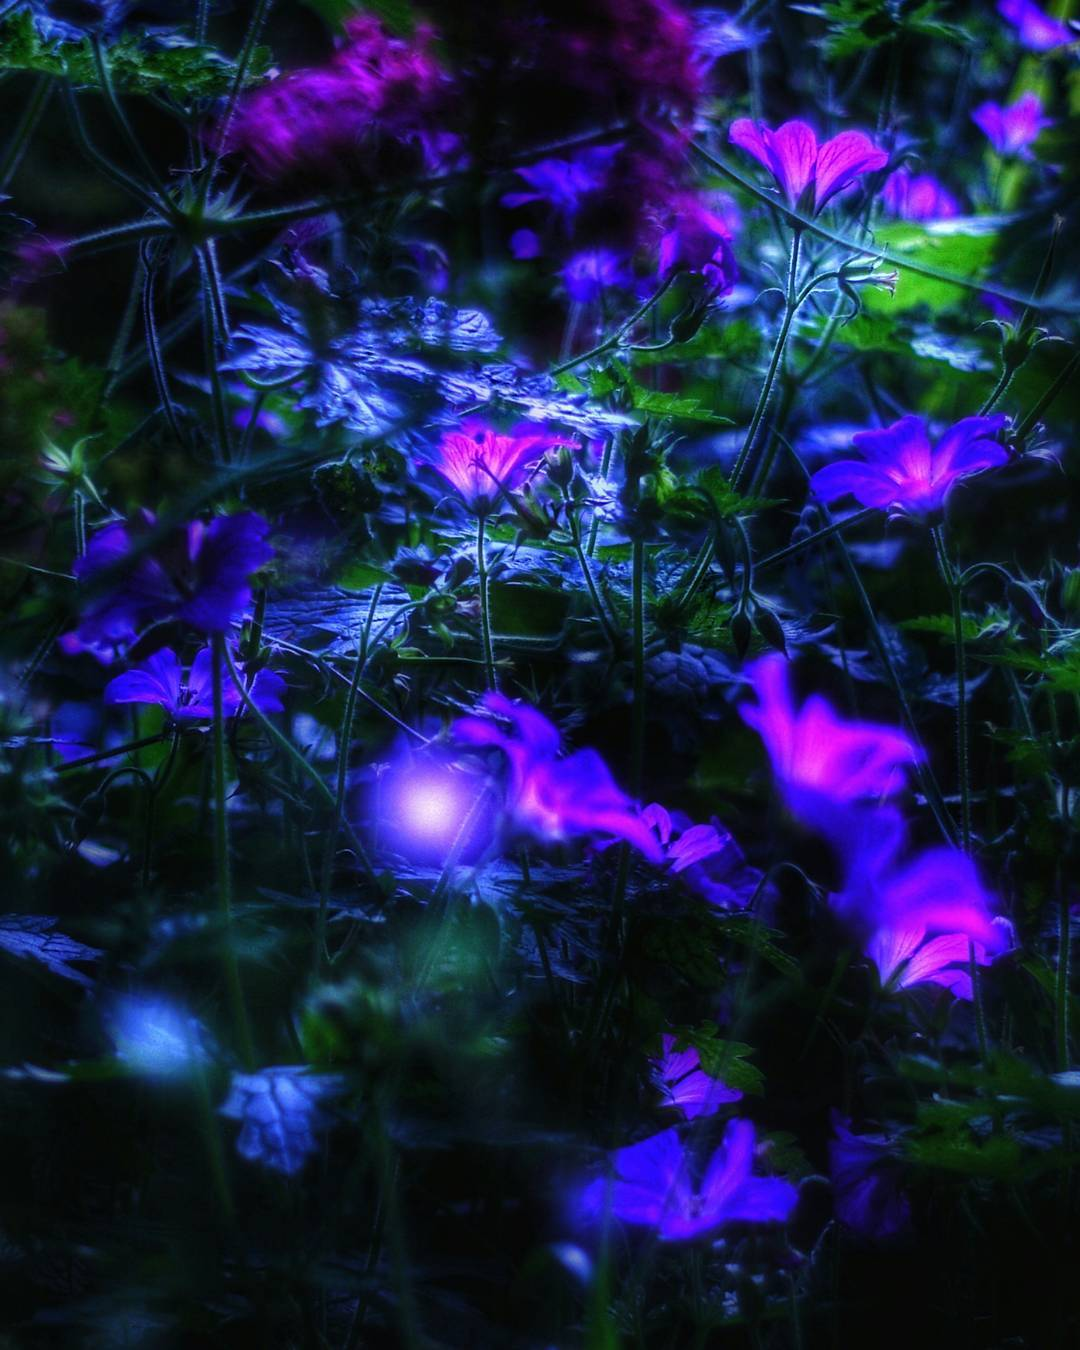 nightblossoms[1].jpg